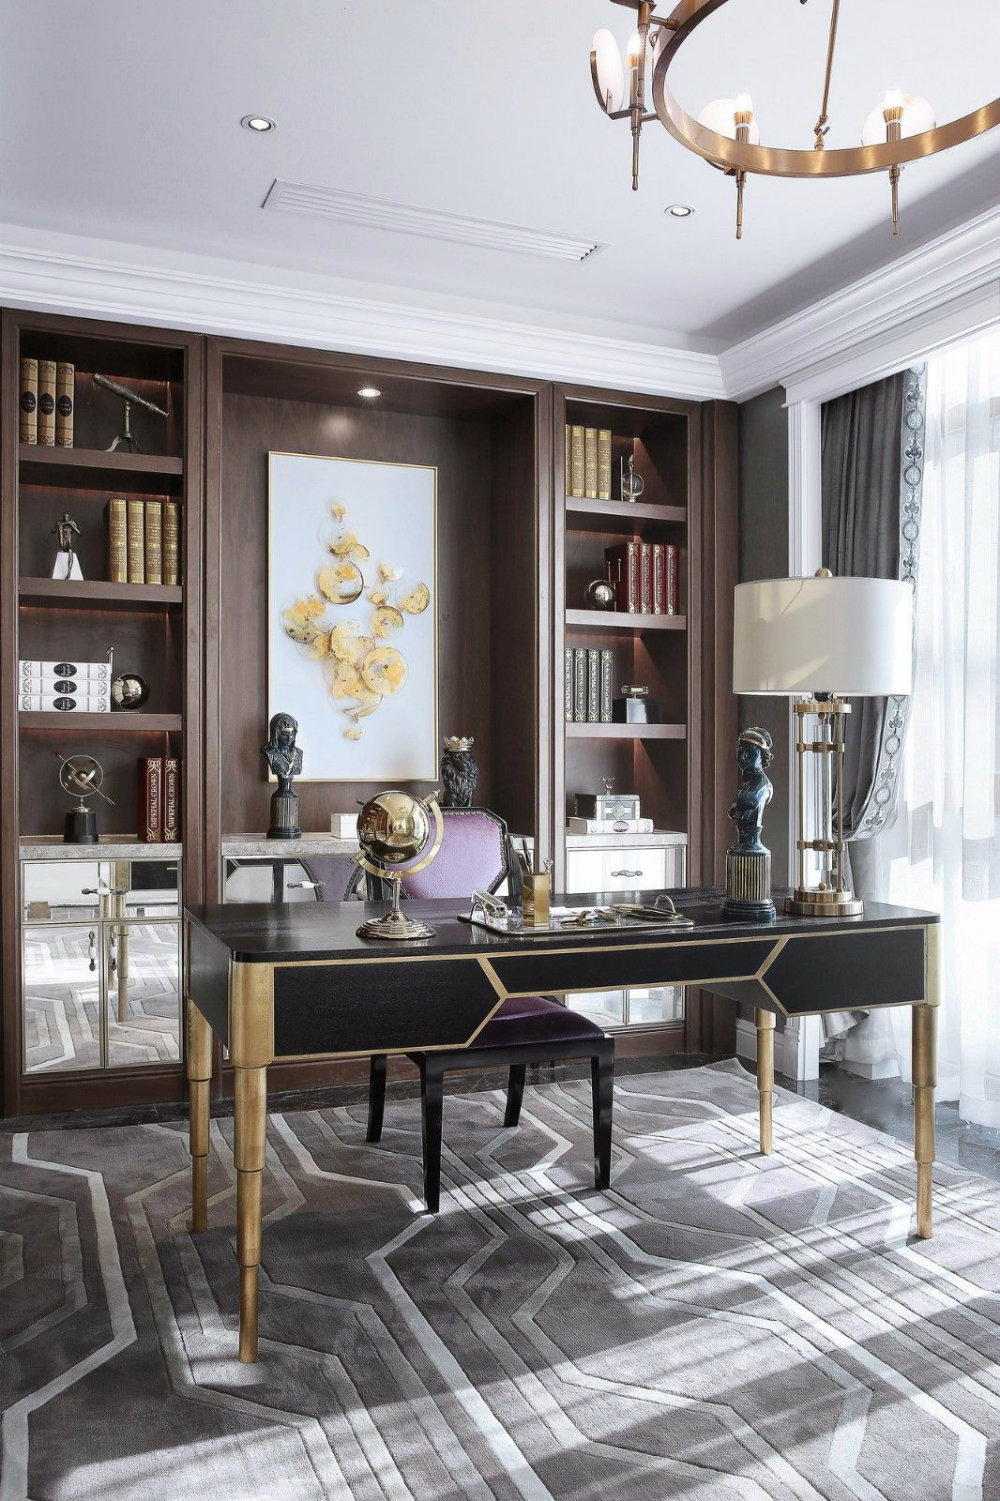 Home Office Room Design: How To Design A Workspace At Home